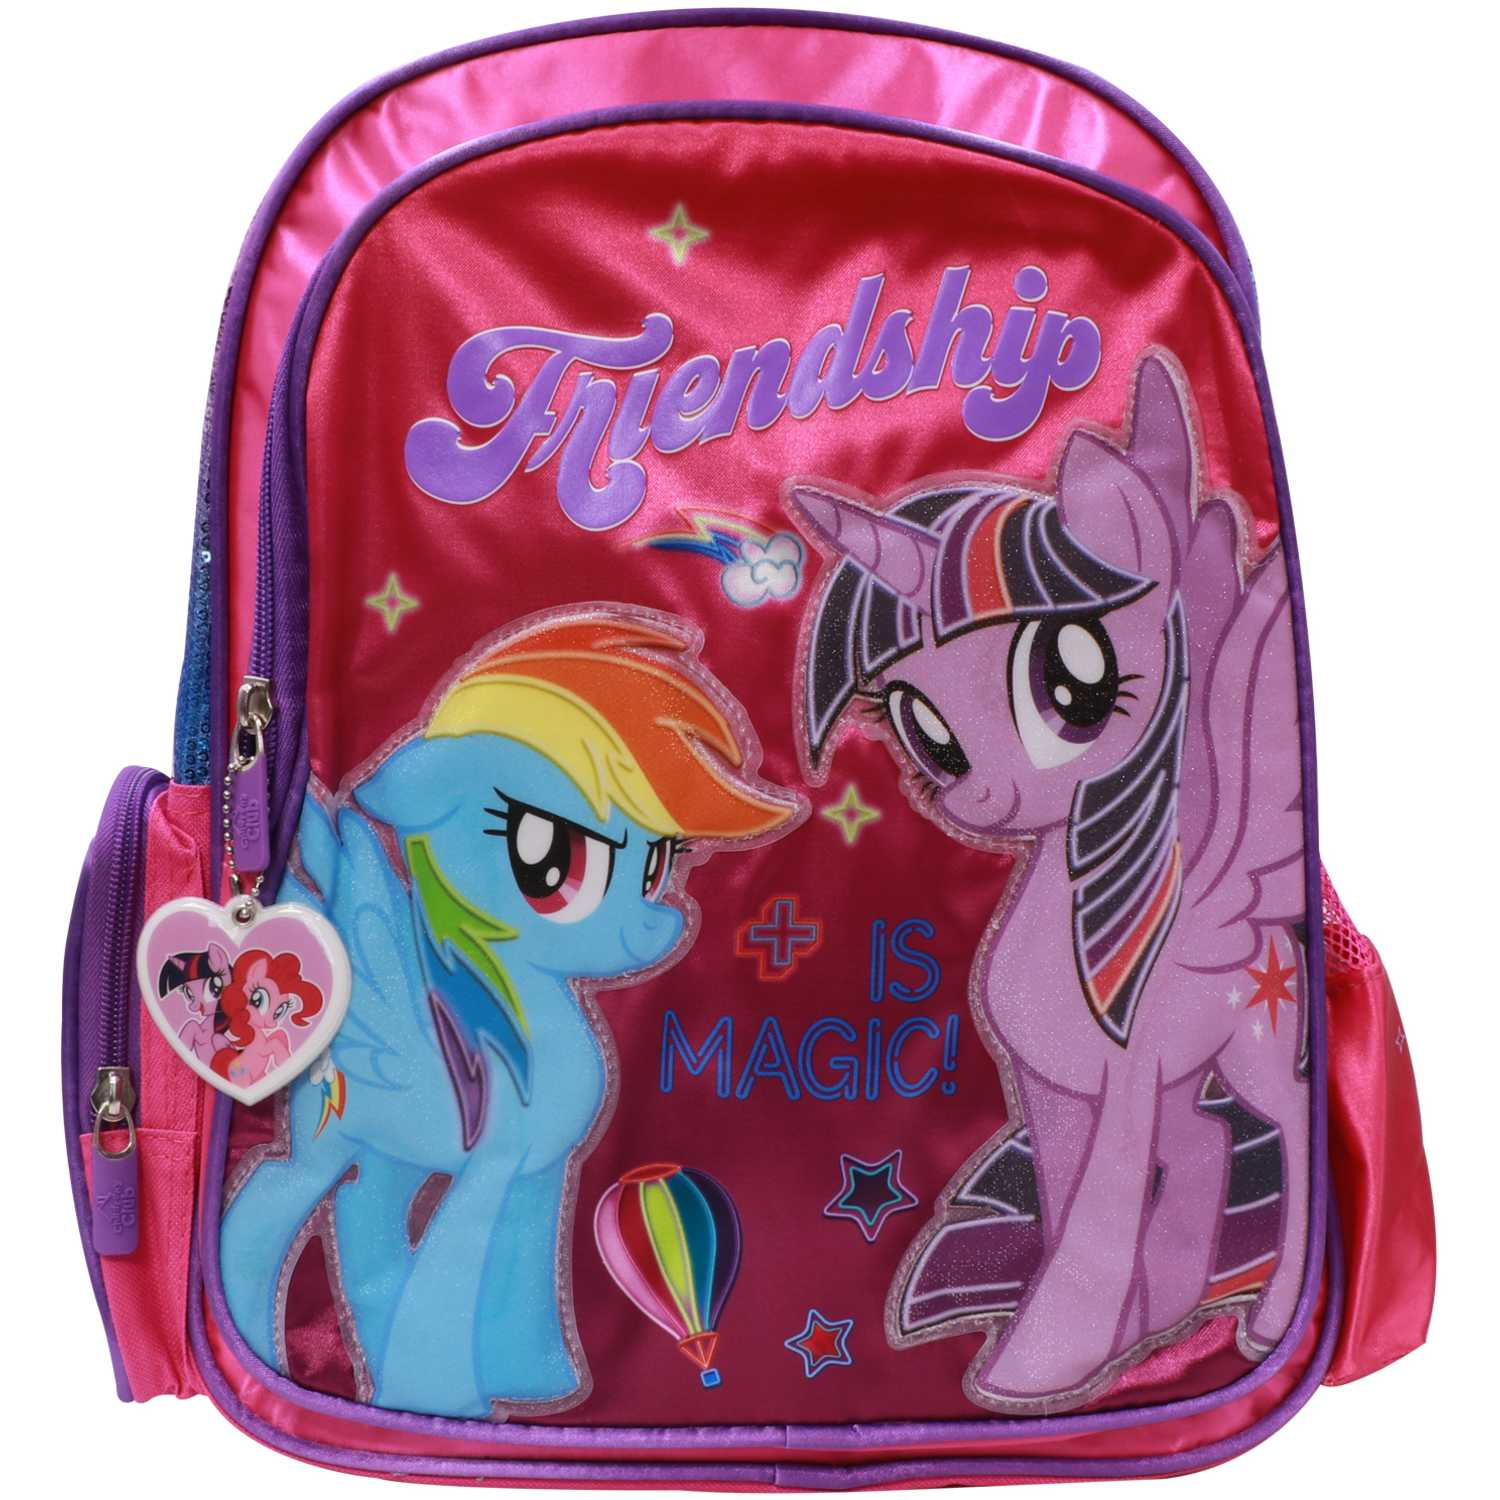 My Little Pony mochila my little pony Rosado mochilas